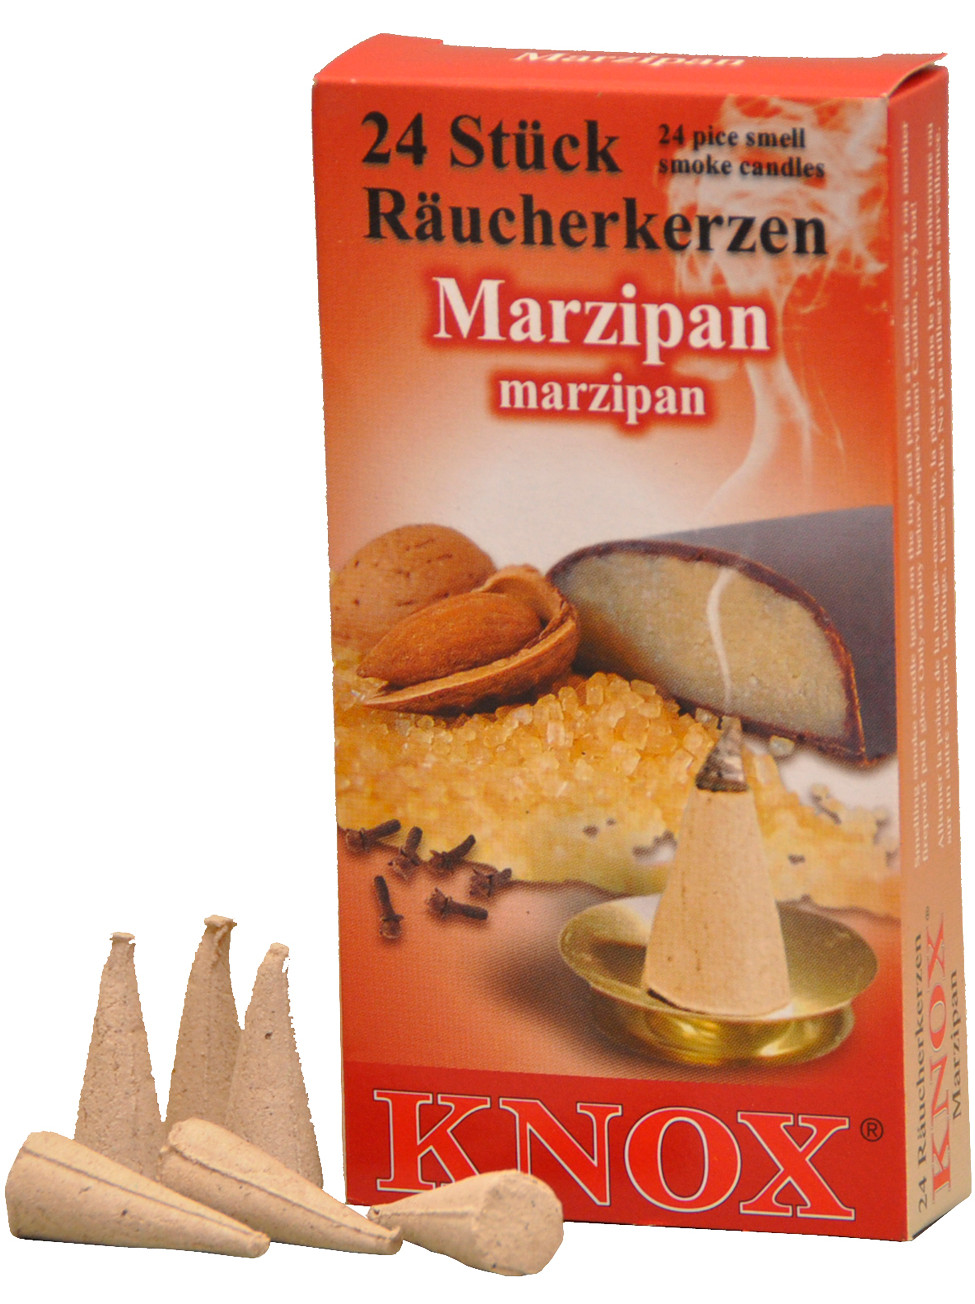 013340 Marzipan (Almond)  Scented Cone Incense for Smokers